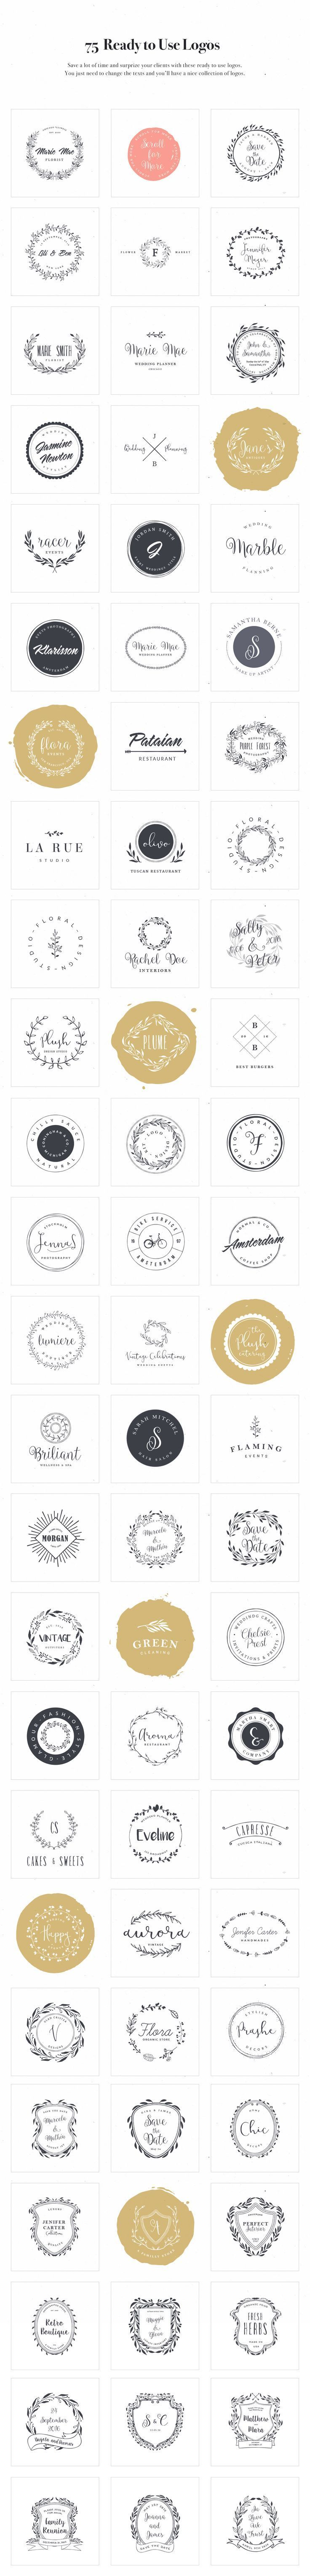 Logo Design Kit by VladCristea on @creativemarket